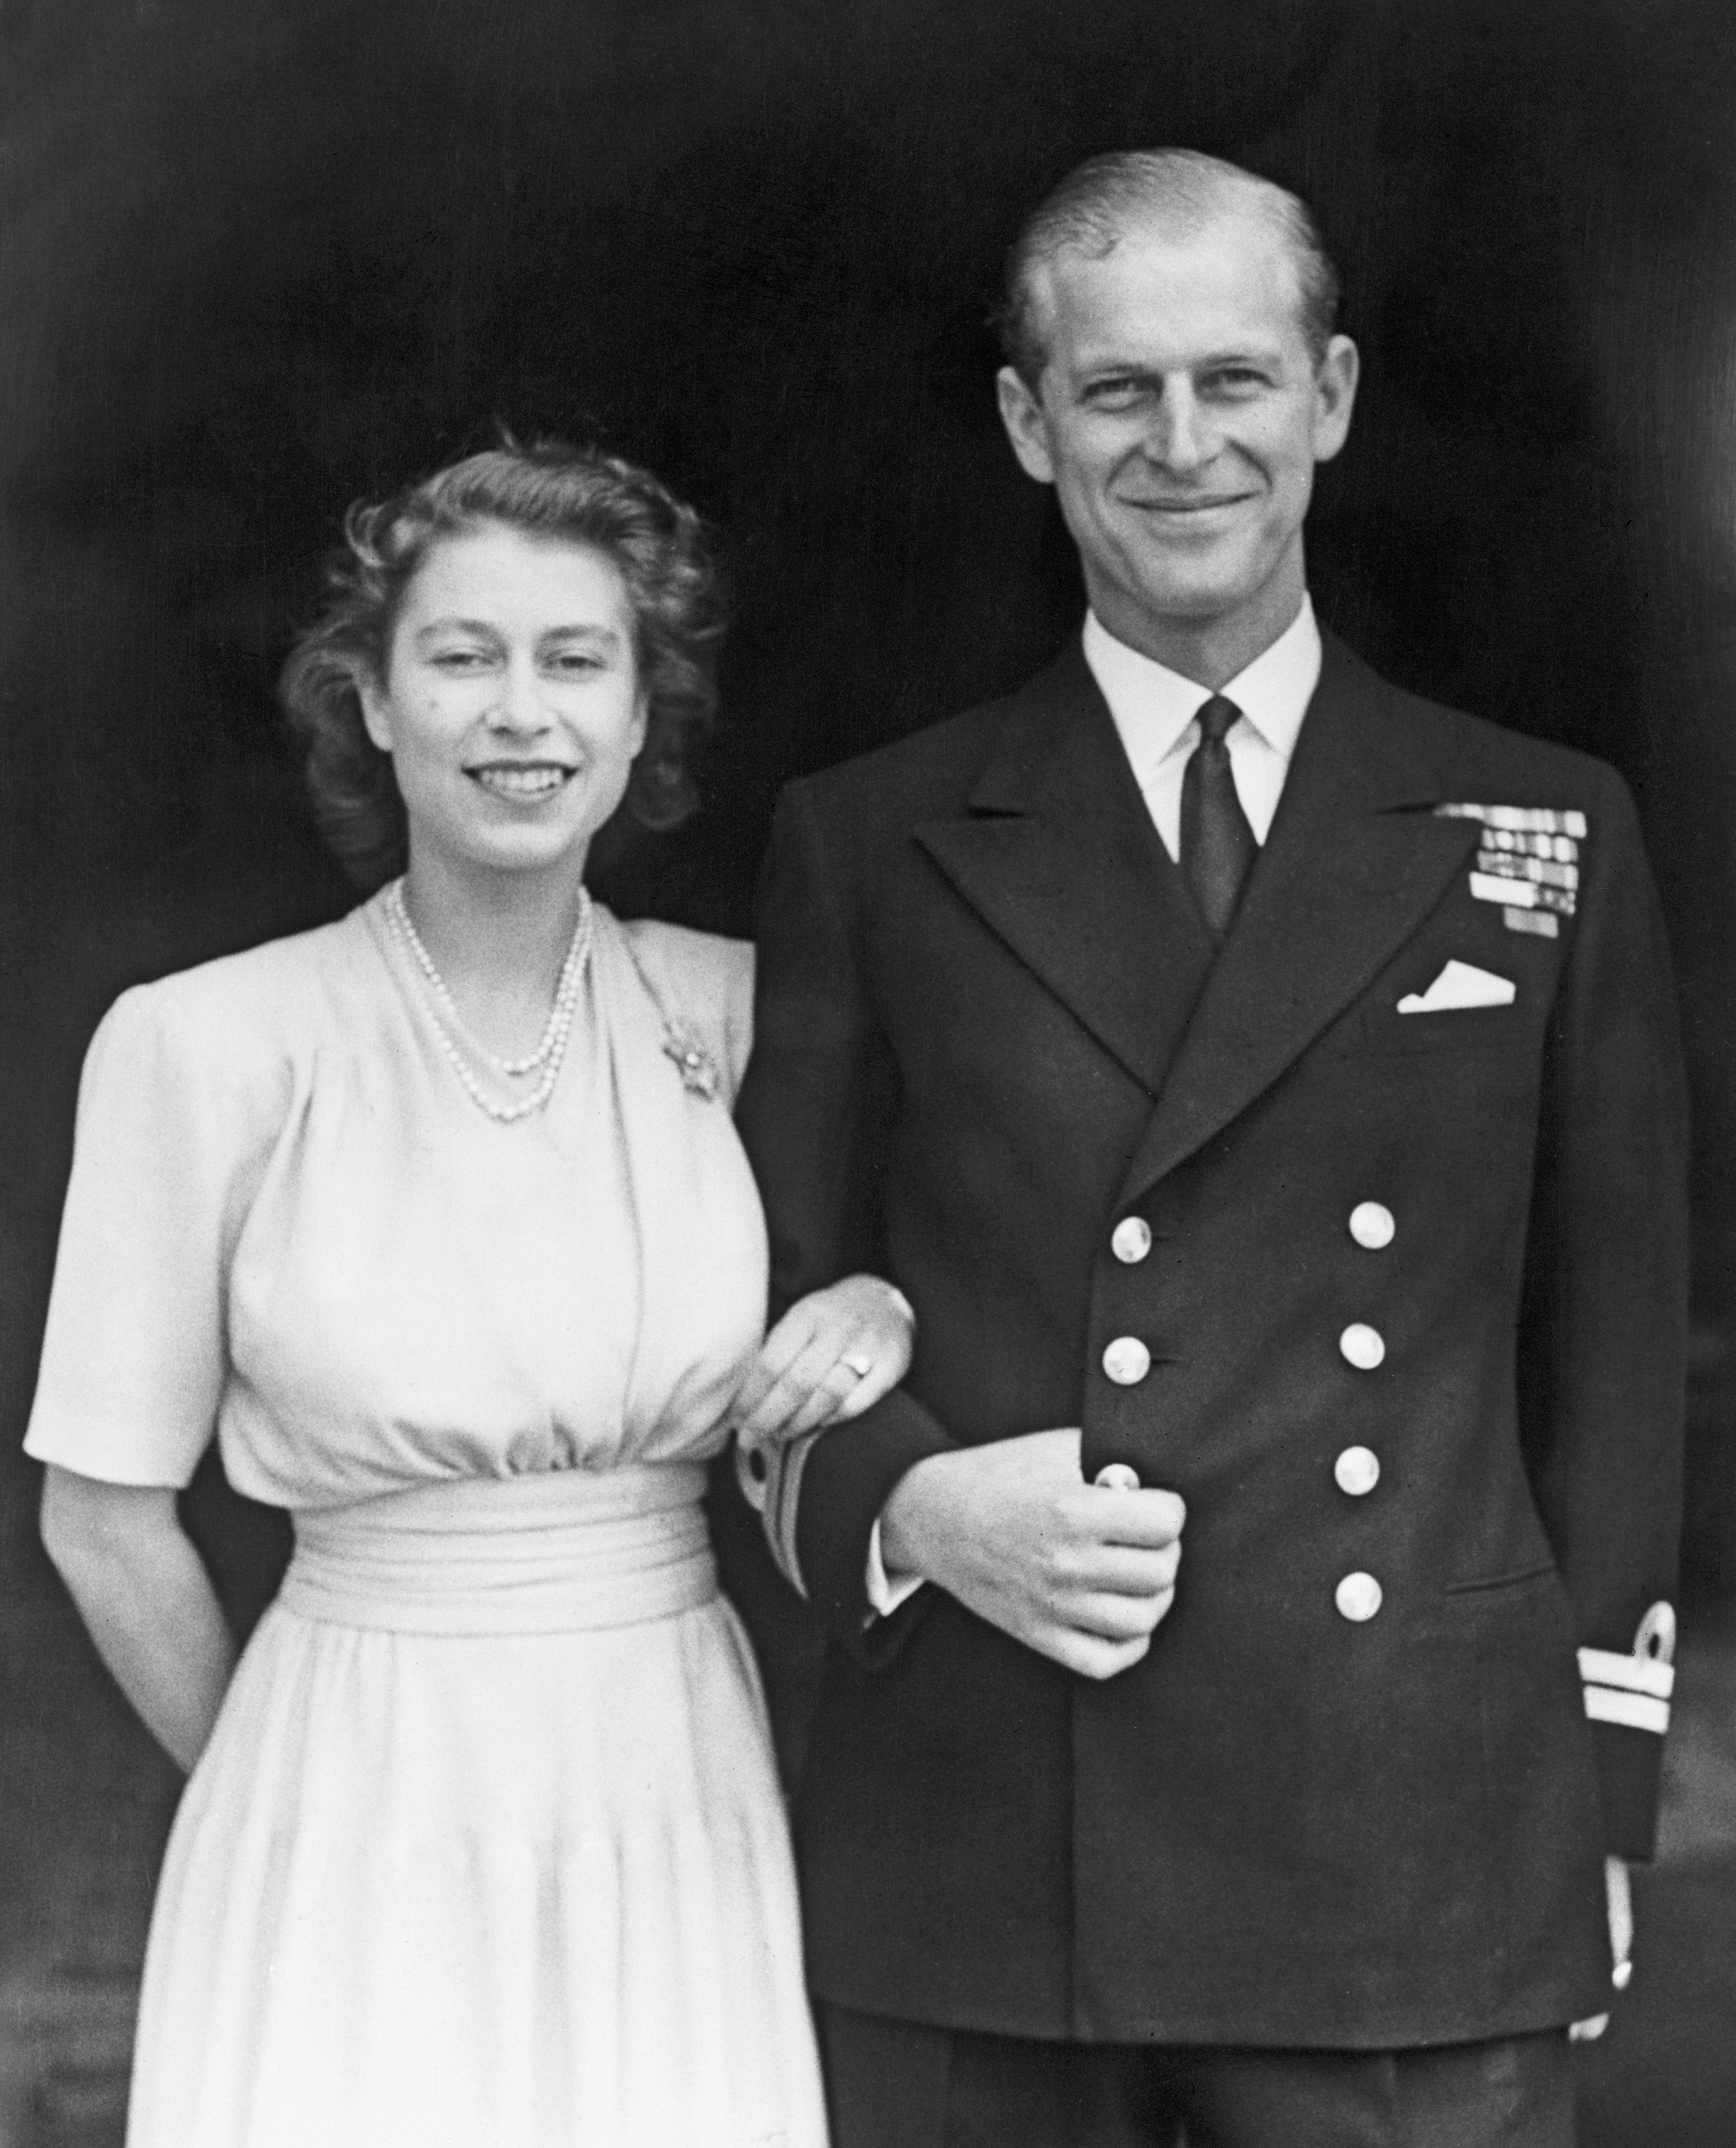 Queen Elizabeth (Princess at time) and Philip Mountbatten, Duke of Edinburgh, on the occasion of their engagement at Buckingham Palace in London in 1947   Photo: Fox Photos/Getty Images